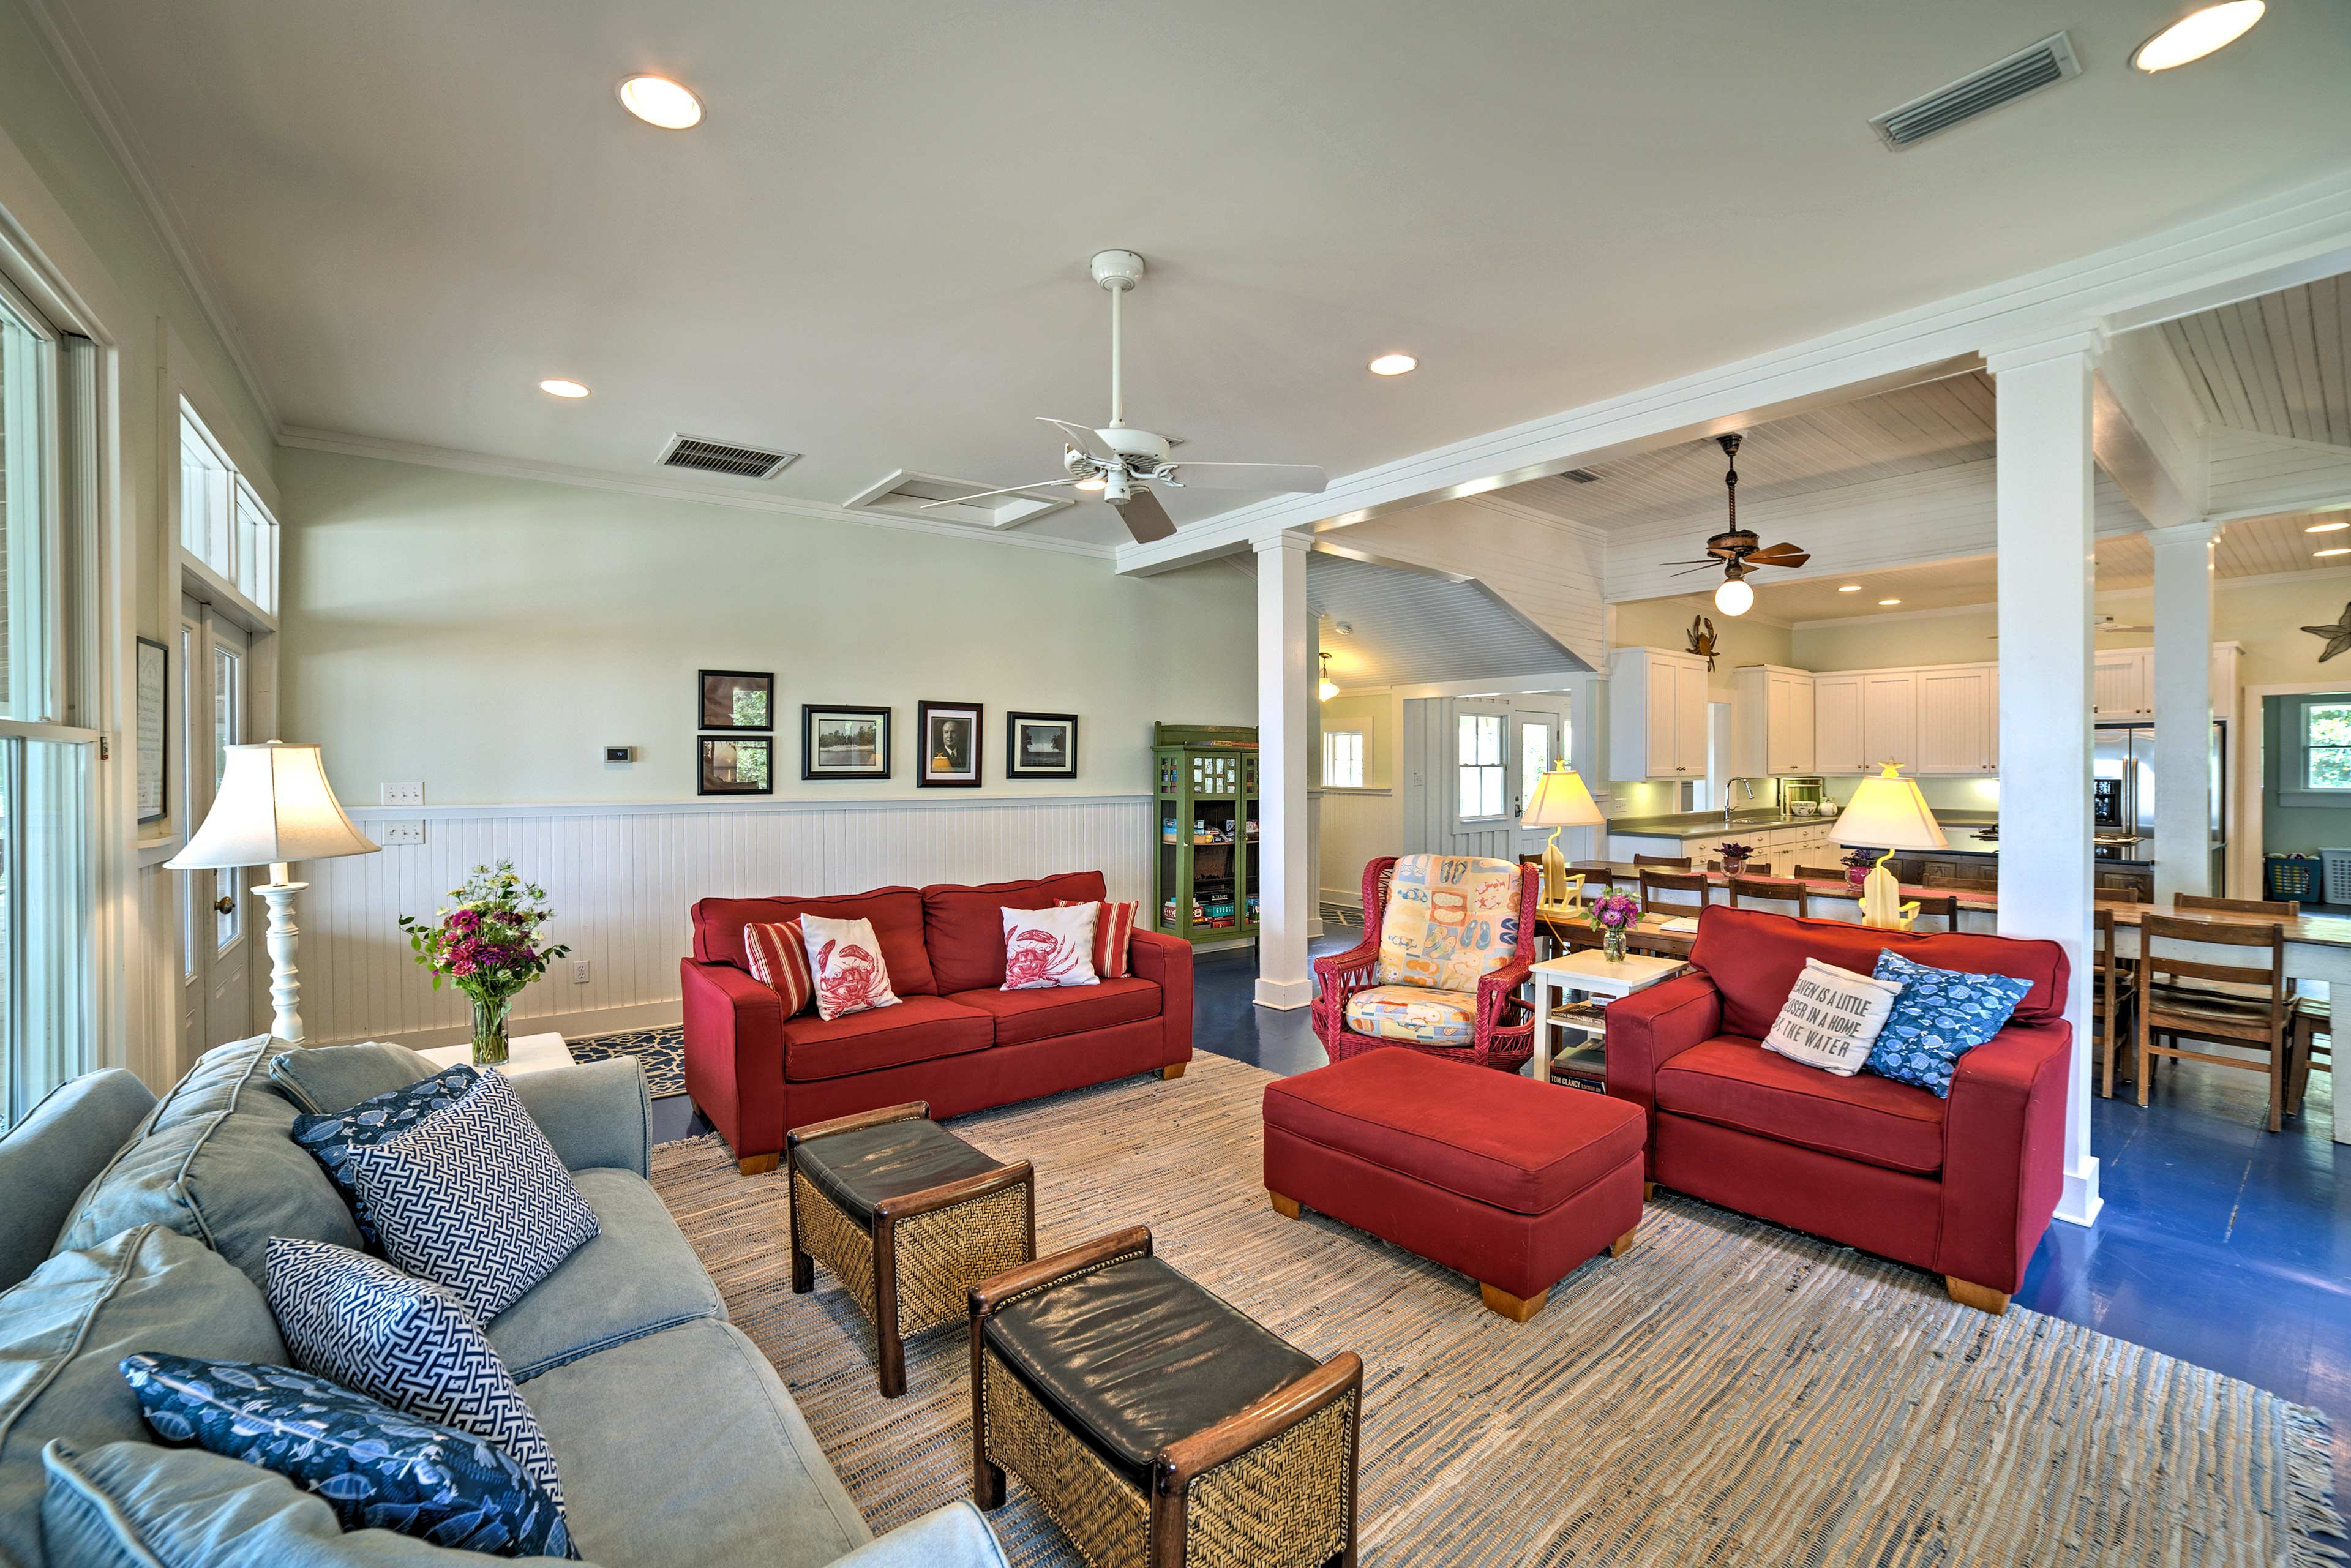 The 5-bedroom, 4.5-bath living space was completely renovated in 2008.